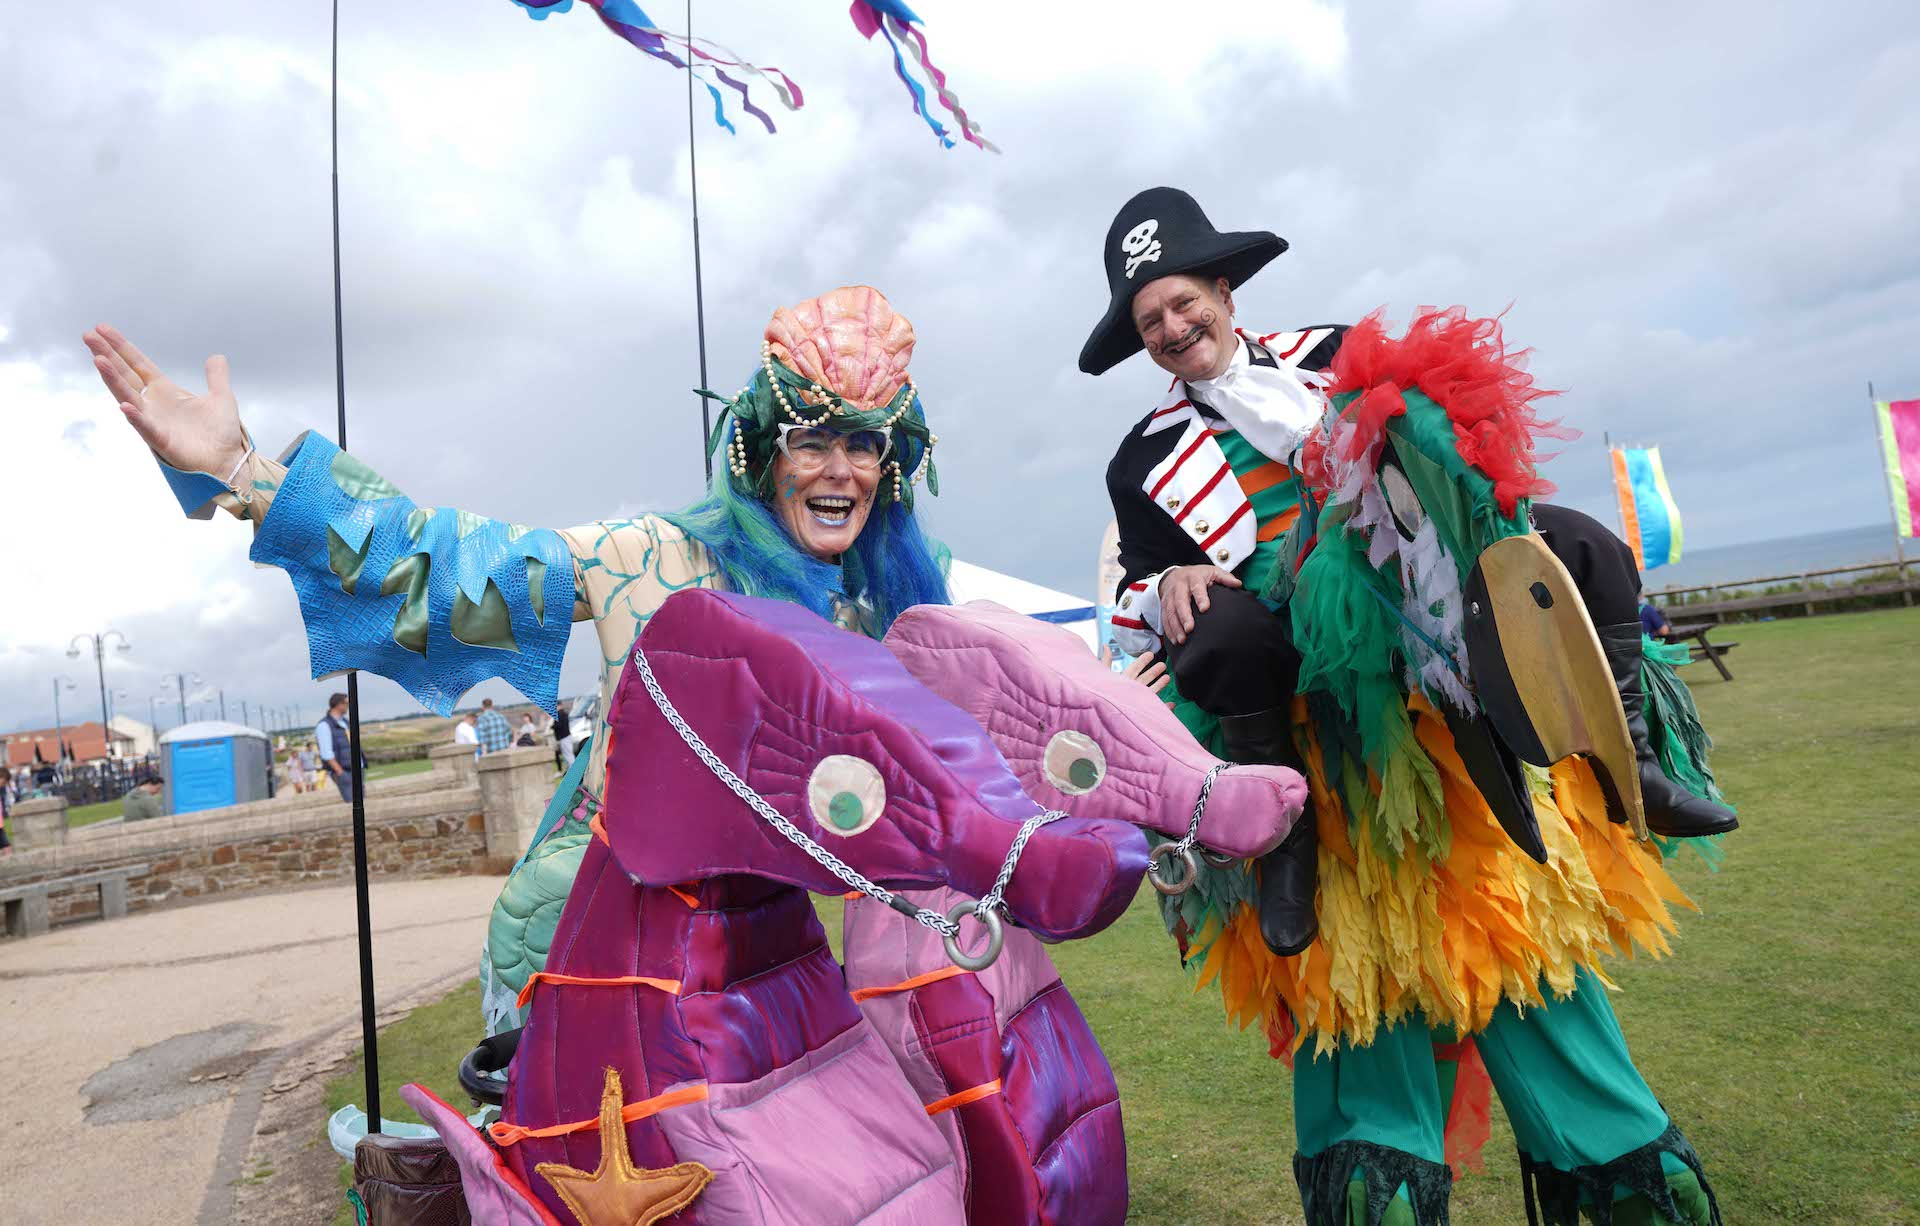 Pirate Parrot costume and Seahorse costume at Seaham Food Festival